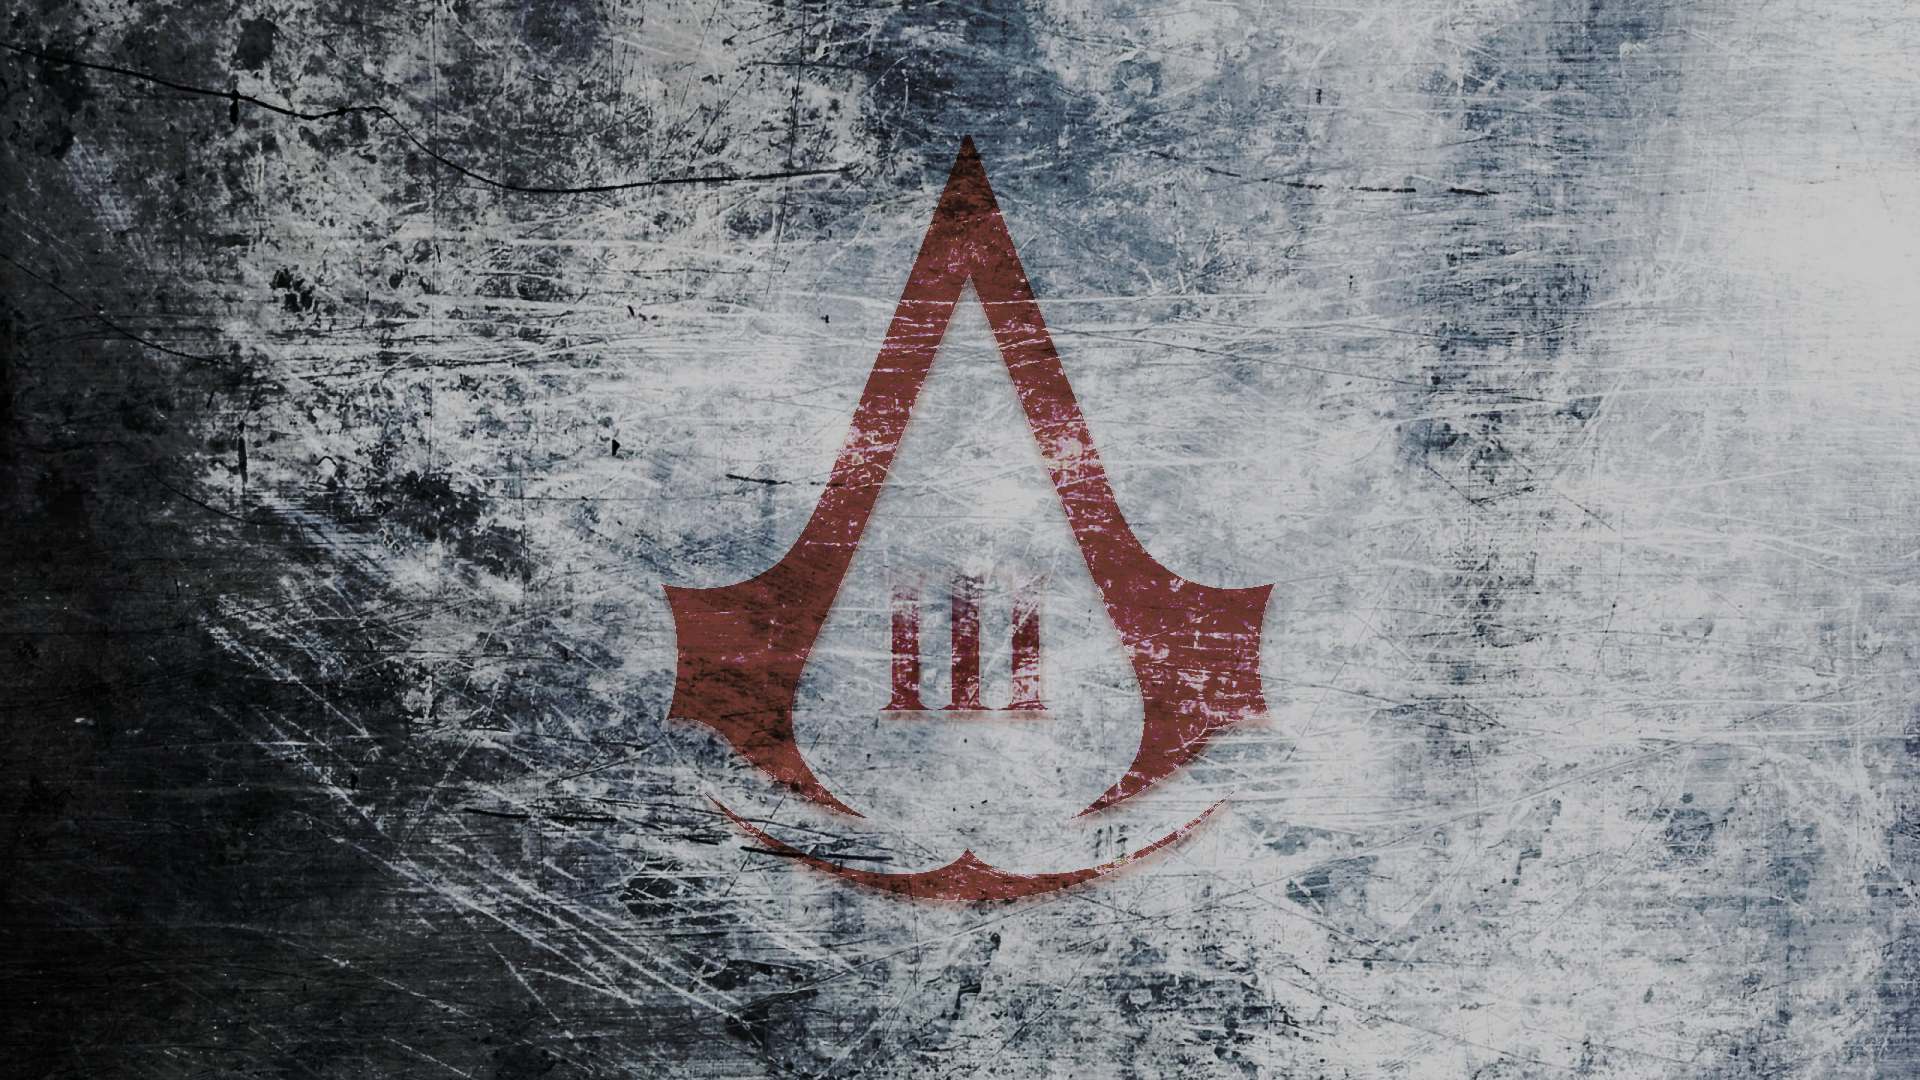 Assassin S Creed 3 Wallpaper 1920x1080 By Cain592 On Deviantart